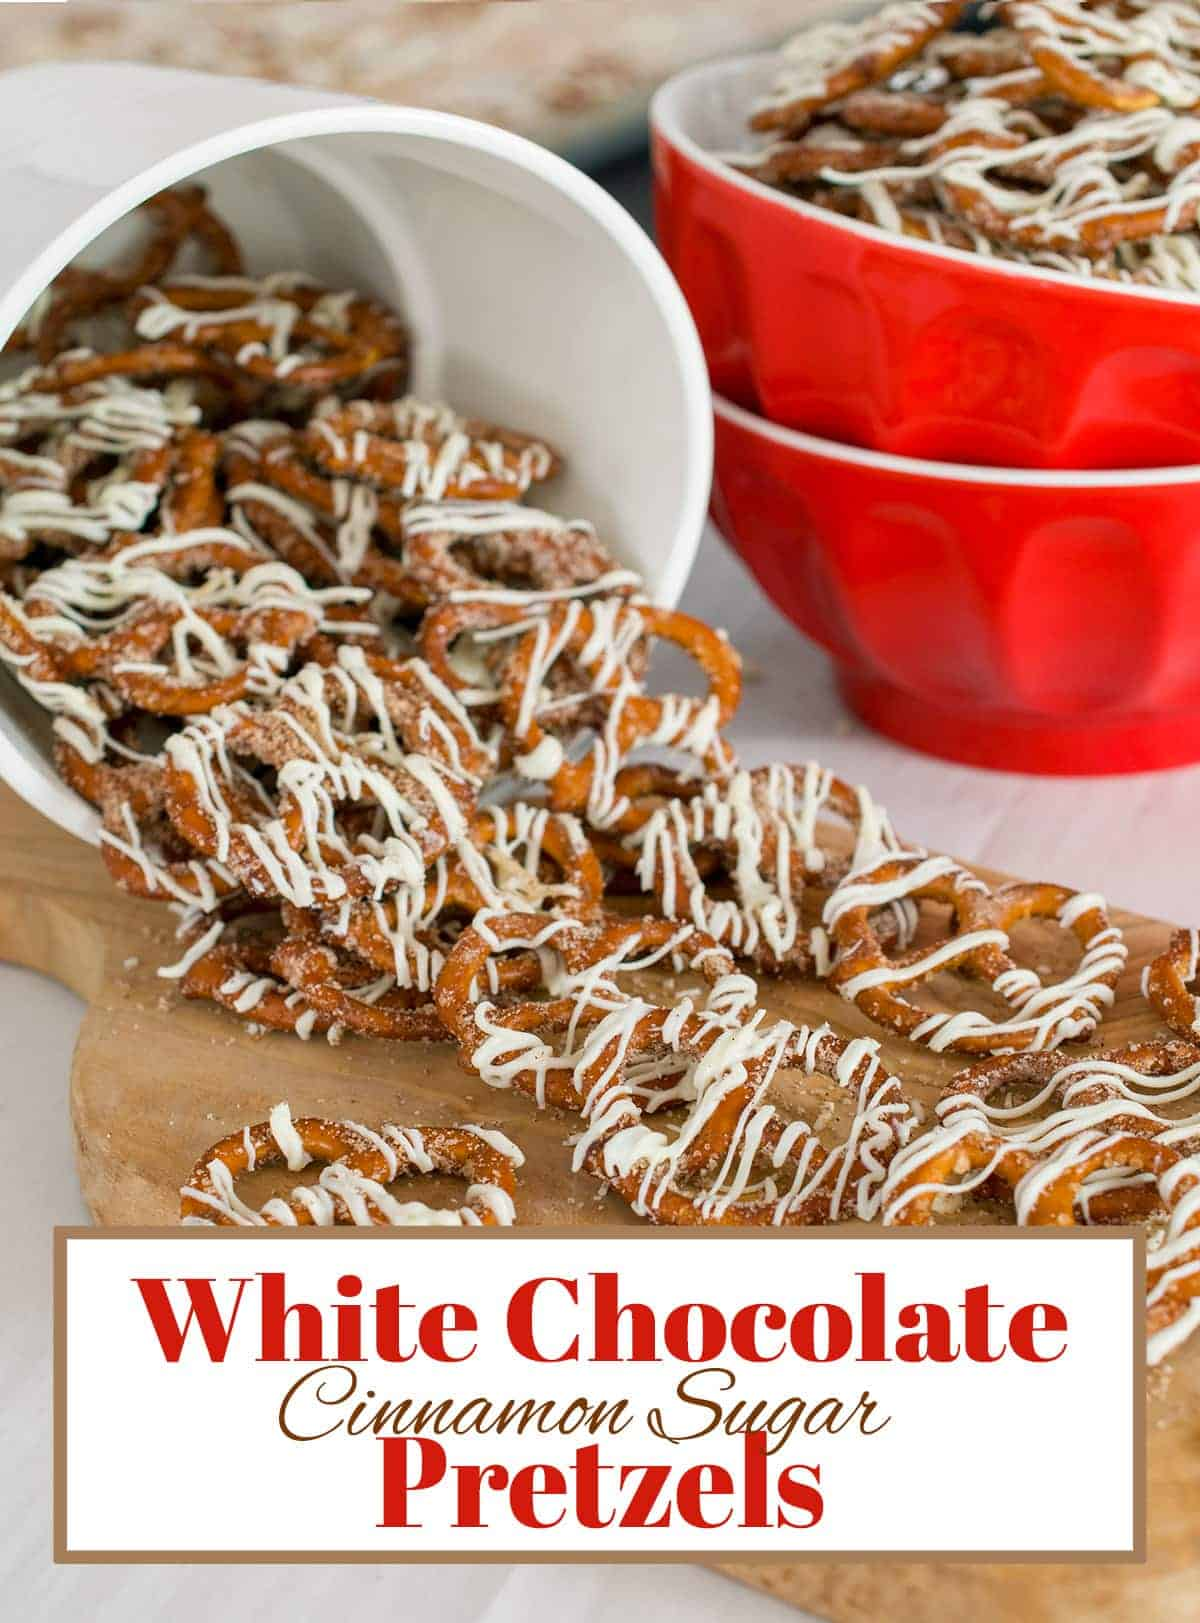 Seriously Addicting! Easy dessert or snack mix for parties. Cinnamon Sugar Pretzels with white chocolate drizzled over them